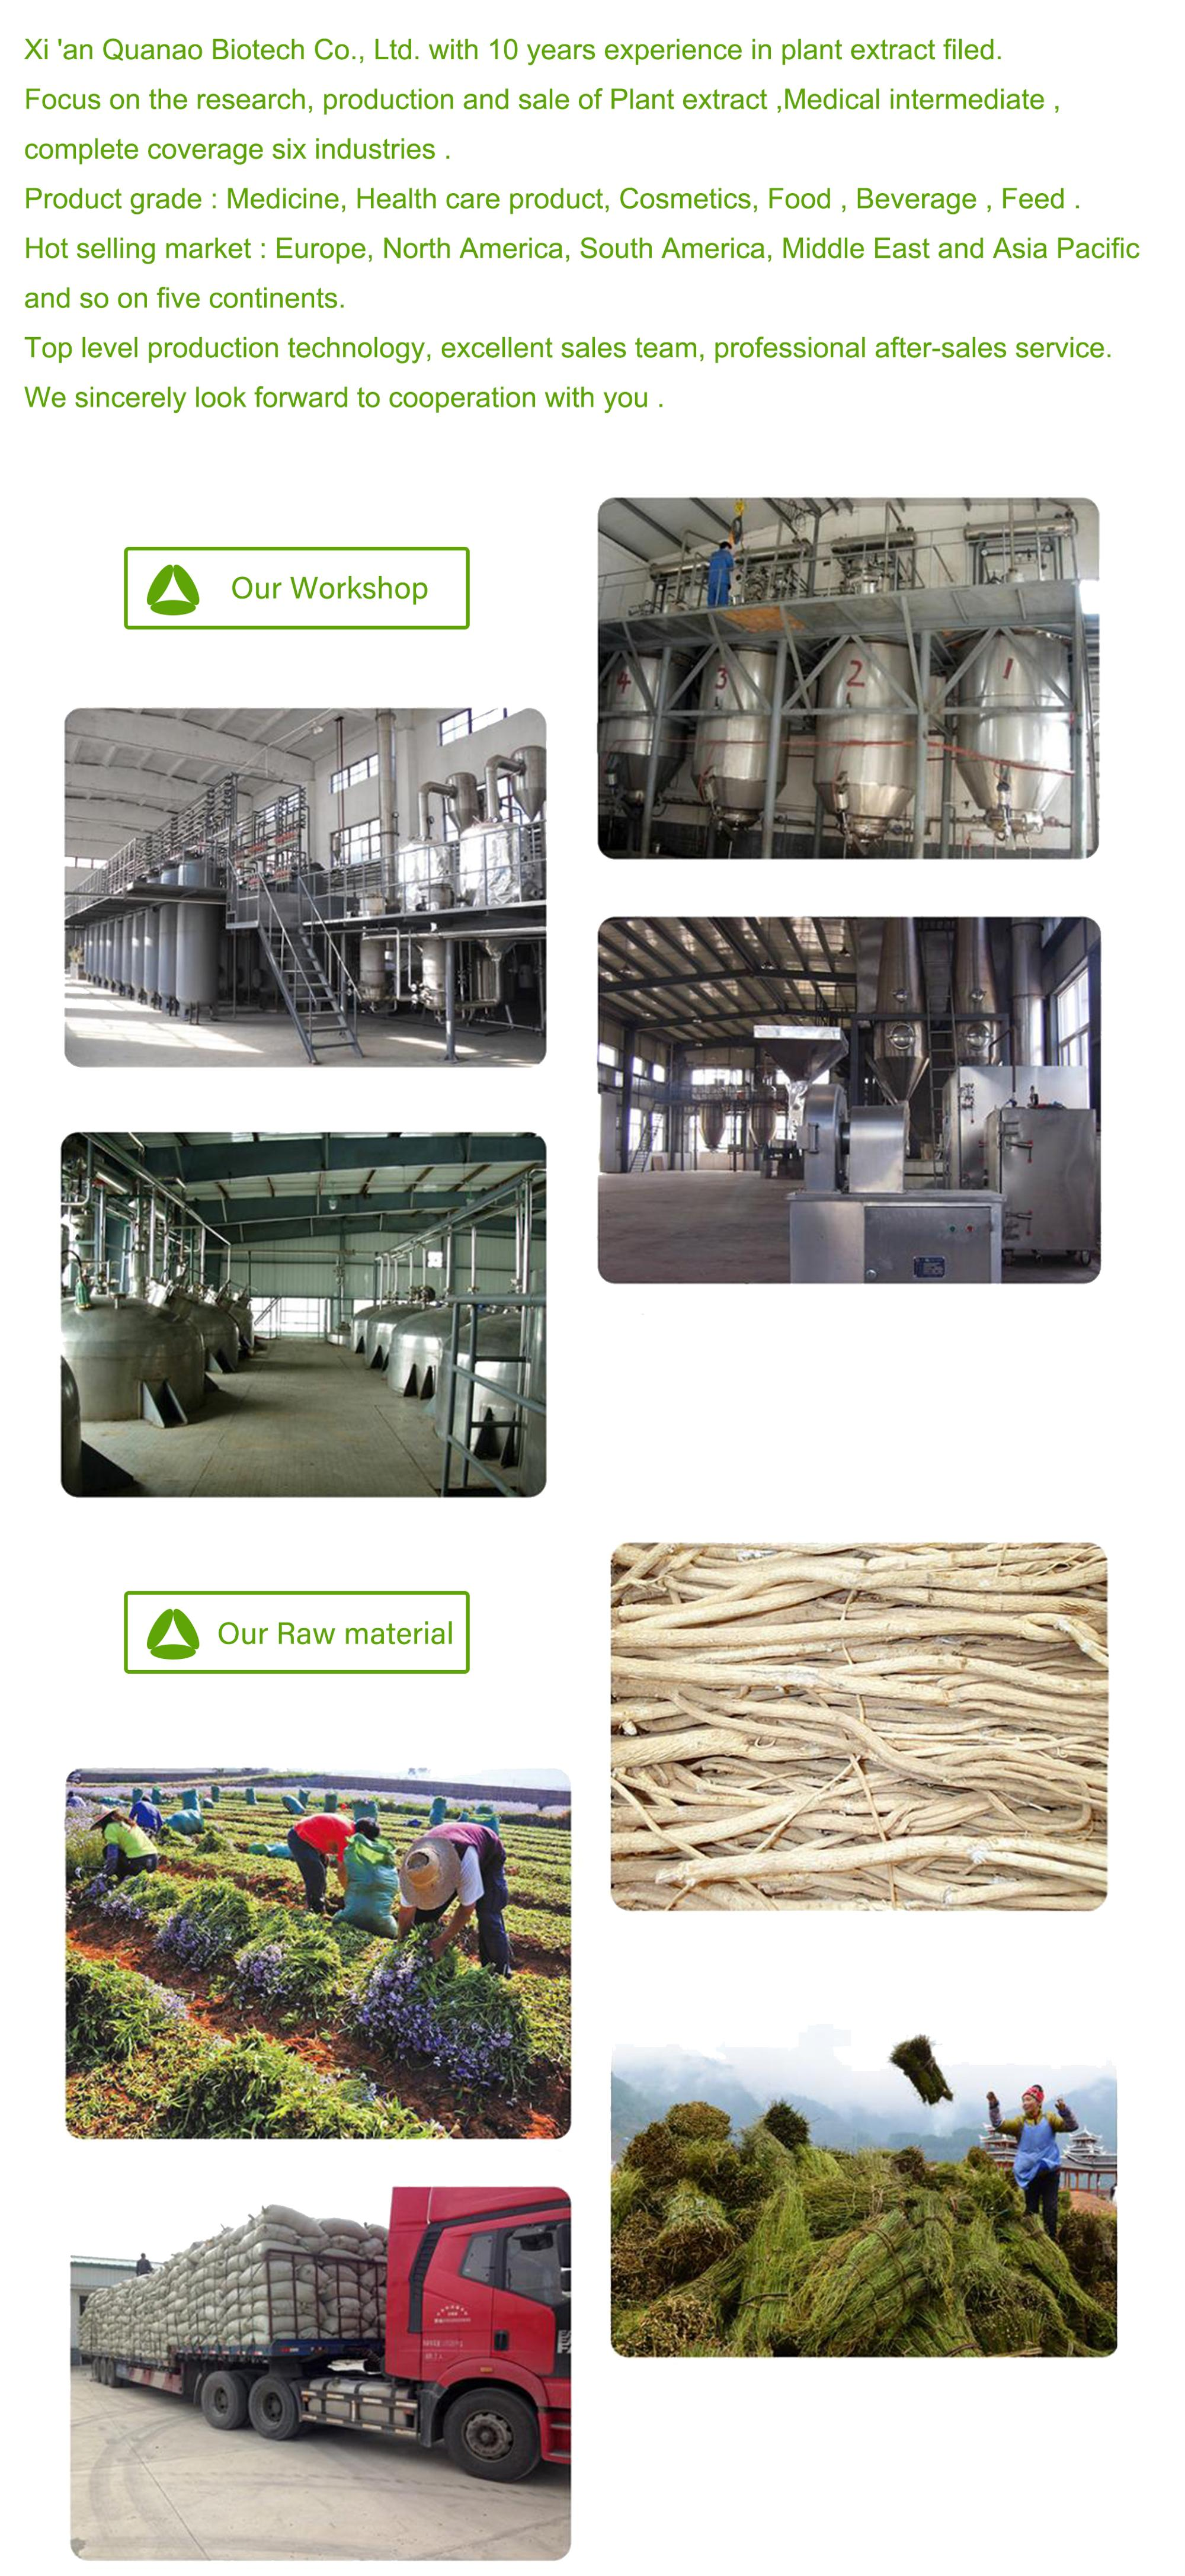 about us factory material.jpg